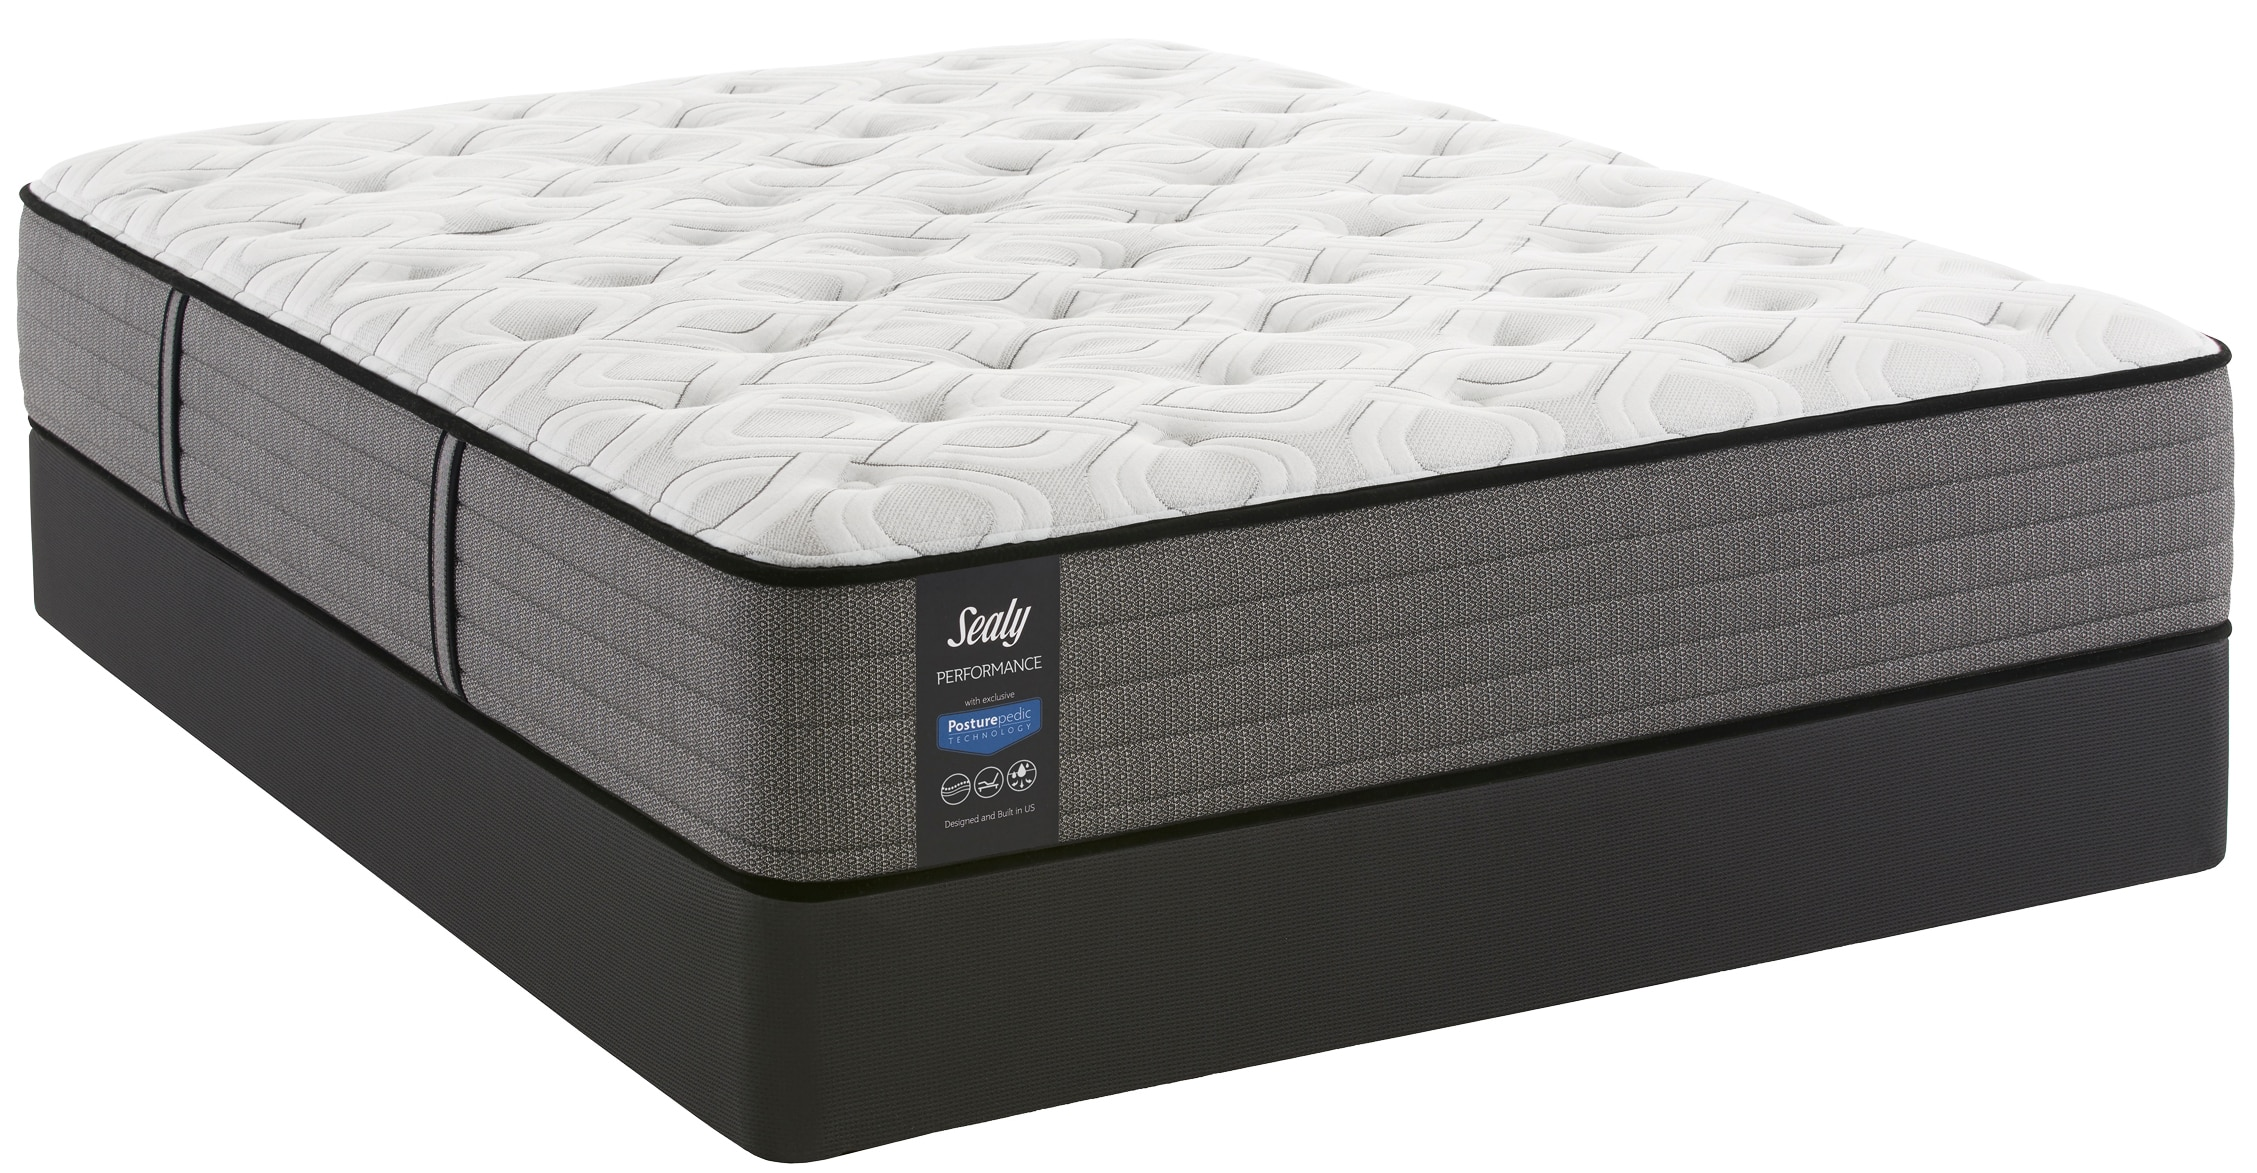 Morning Dove Firm Full XL Mattress and Boxspring Set